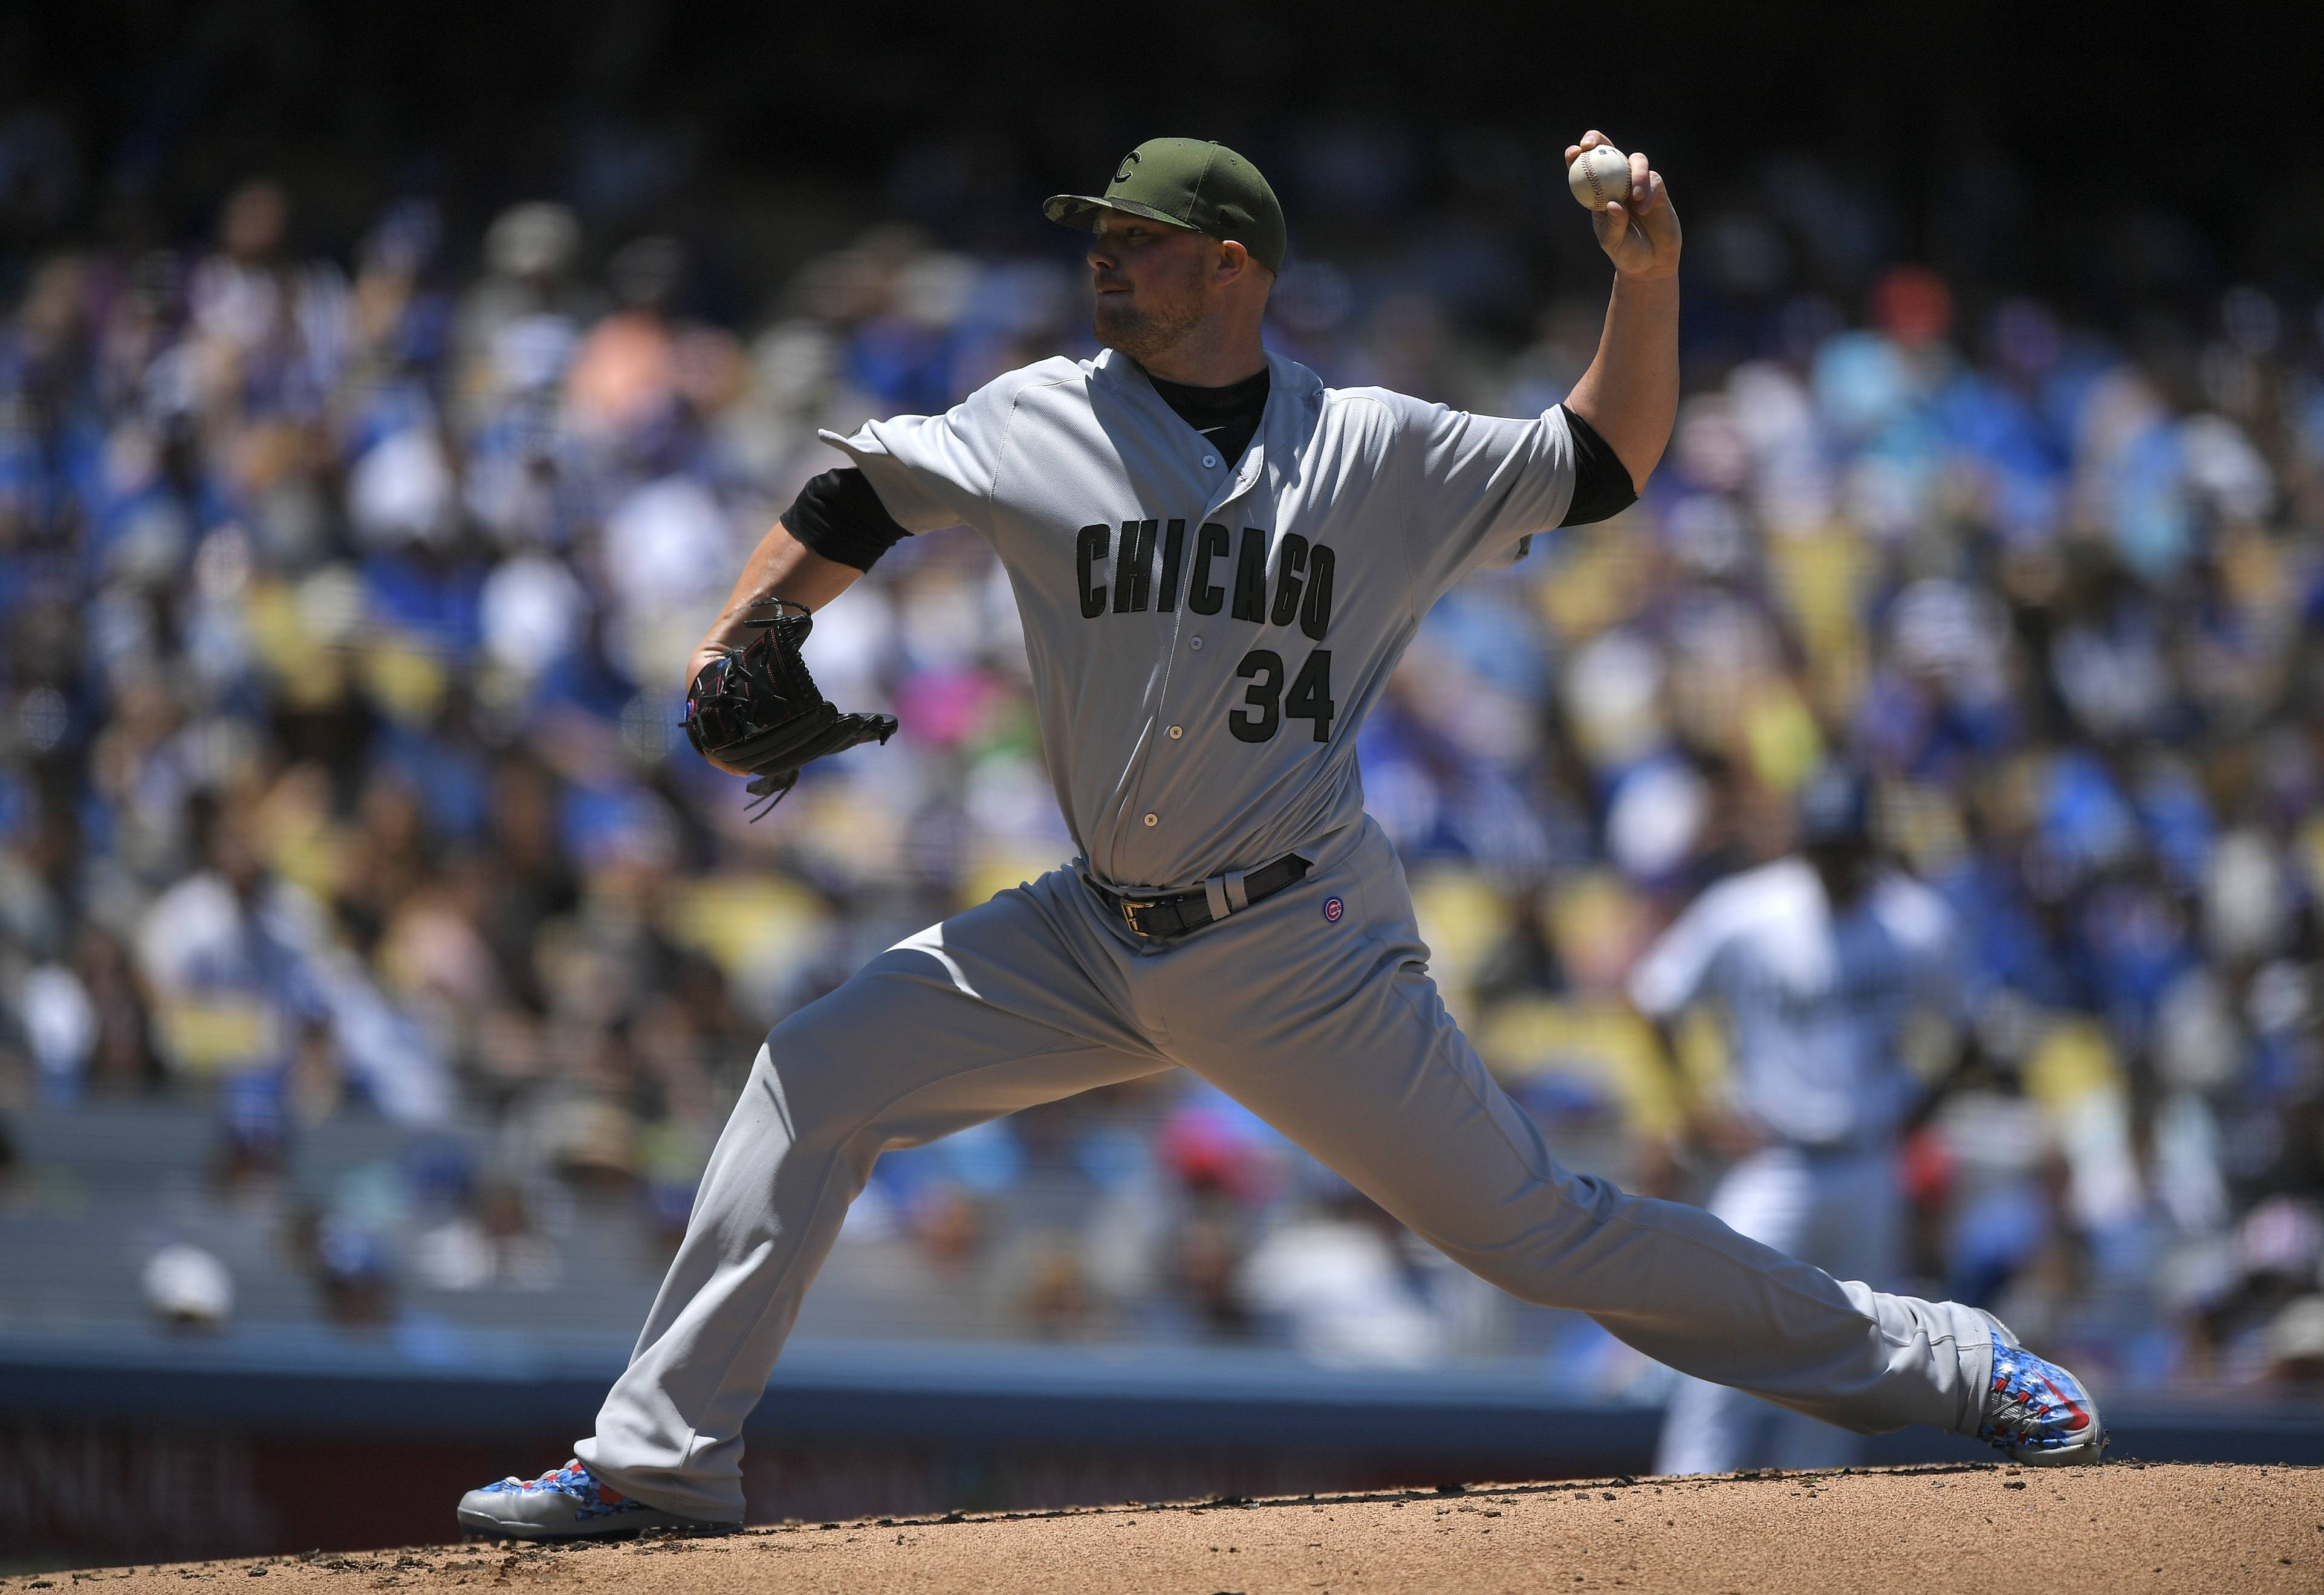 Major-league players such as Chicago Cubs starting pitcher Jon Lester are wearing camouflage this weekend to commemorate Memorial Day, but a pro athletes' commitment to the military not so long ago was so much more.